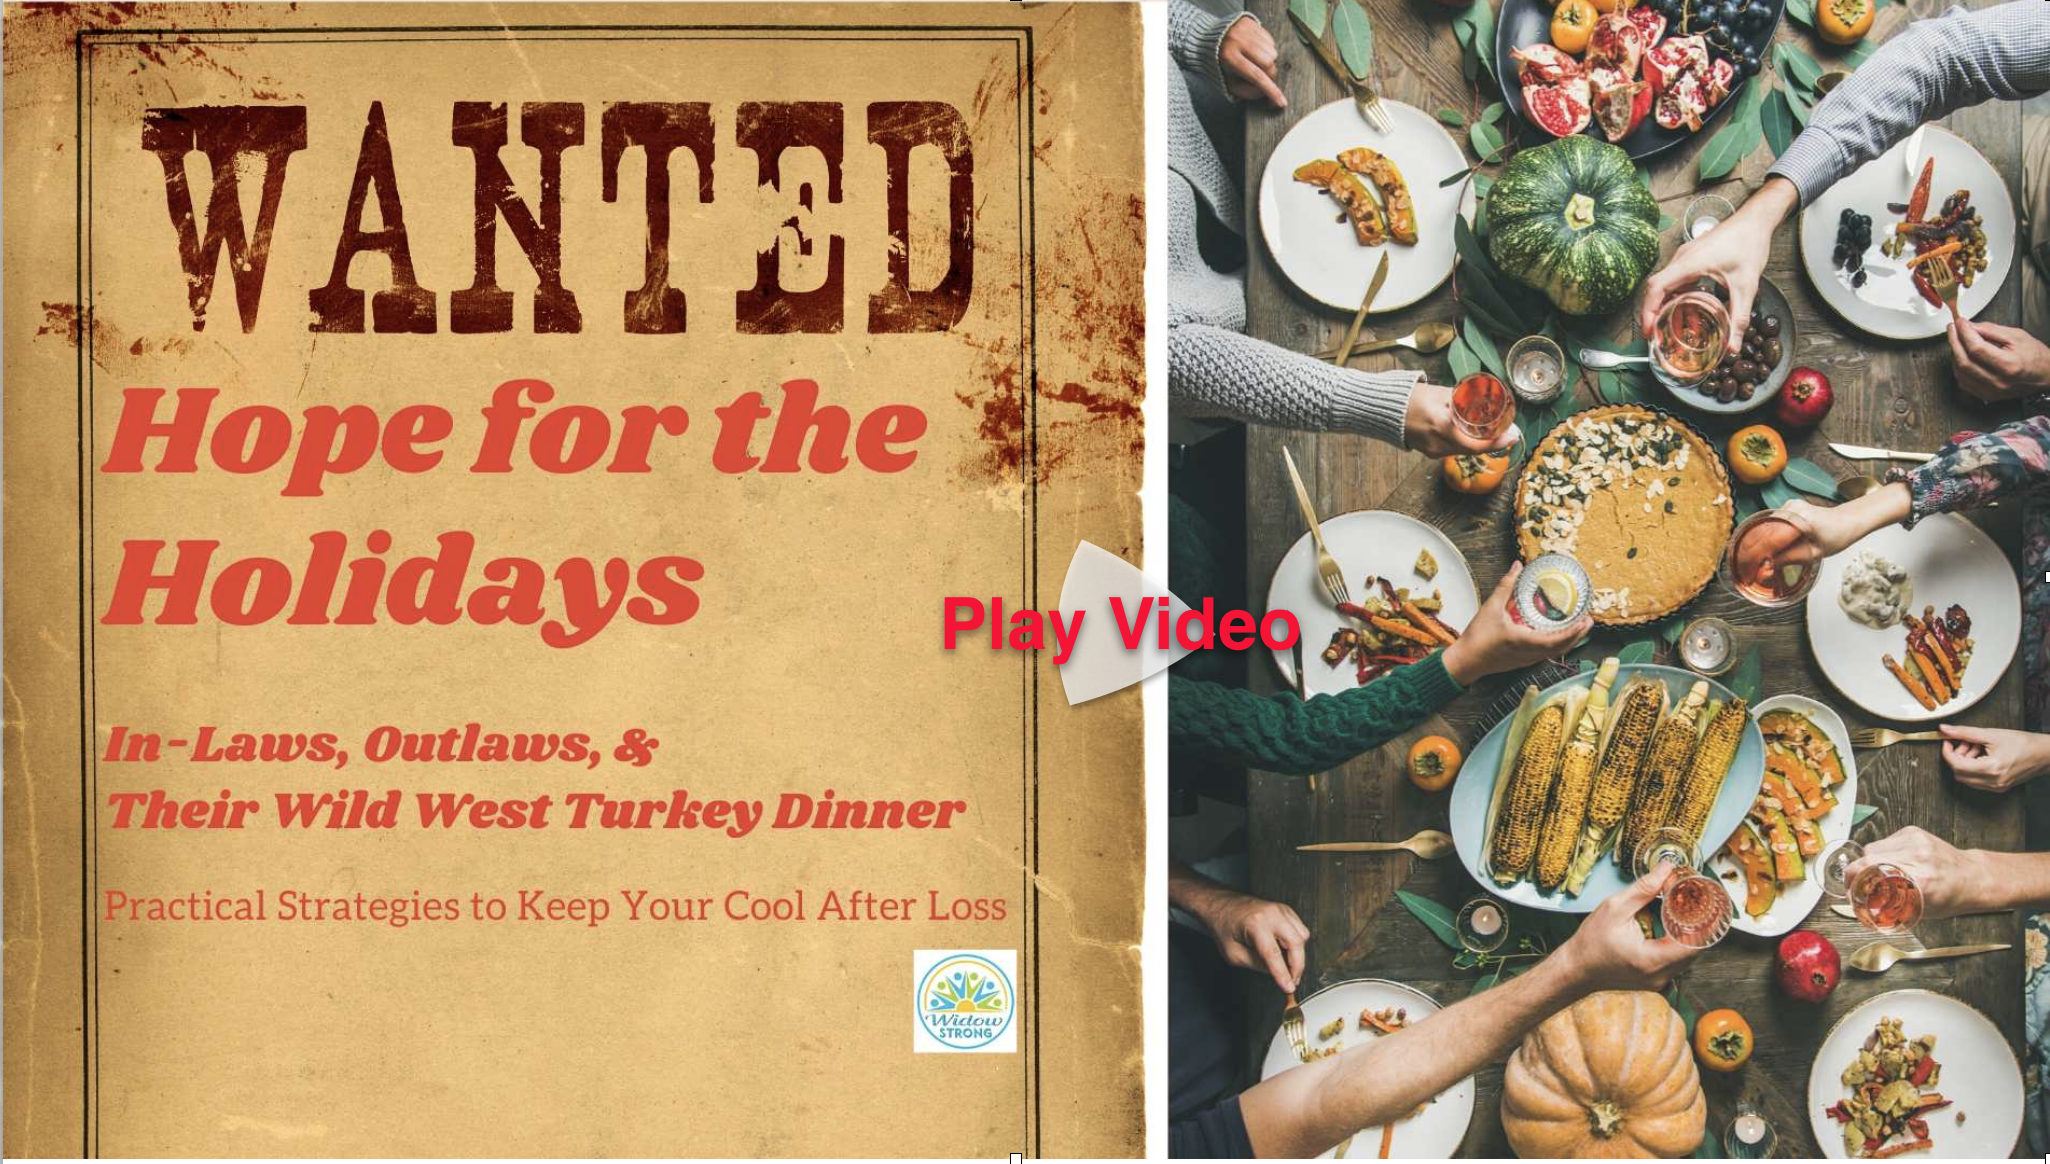 Hope for the Holidays: In-Laws, Outlaws, & Their Wild West Turkey Dinner